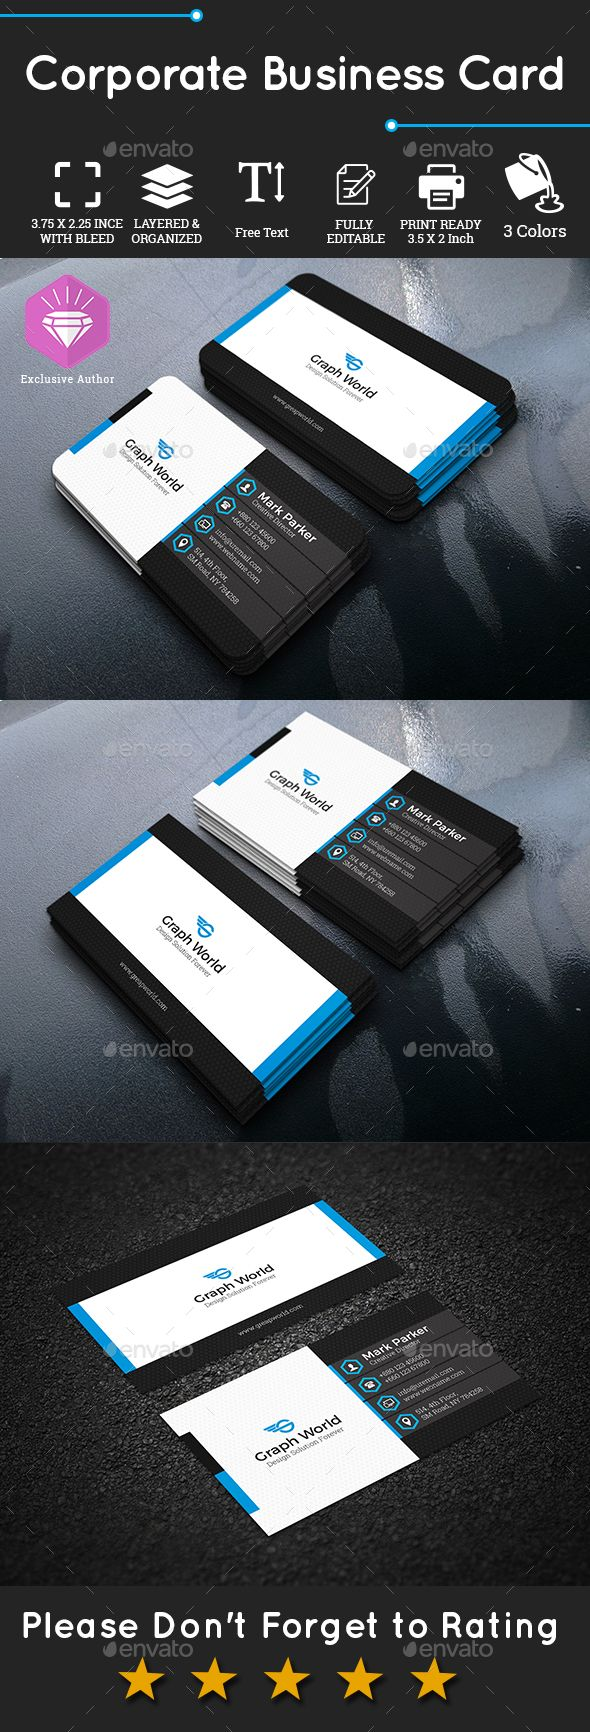 Corporate Business Card Corporate Business Cards Corporate Business Card Business Cards Business Card Template Psd